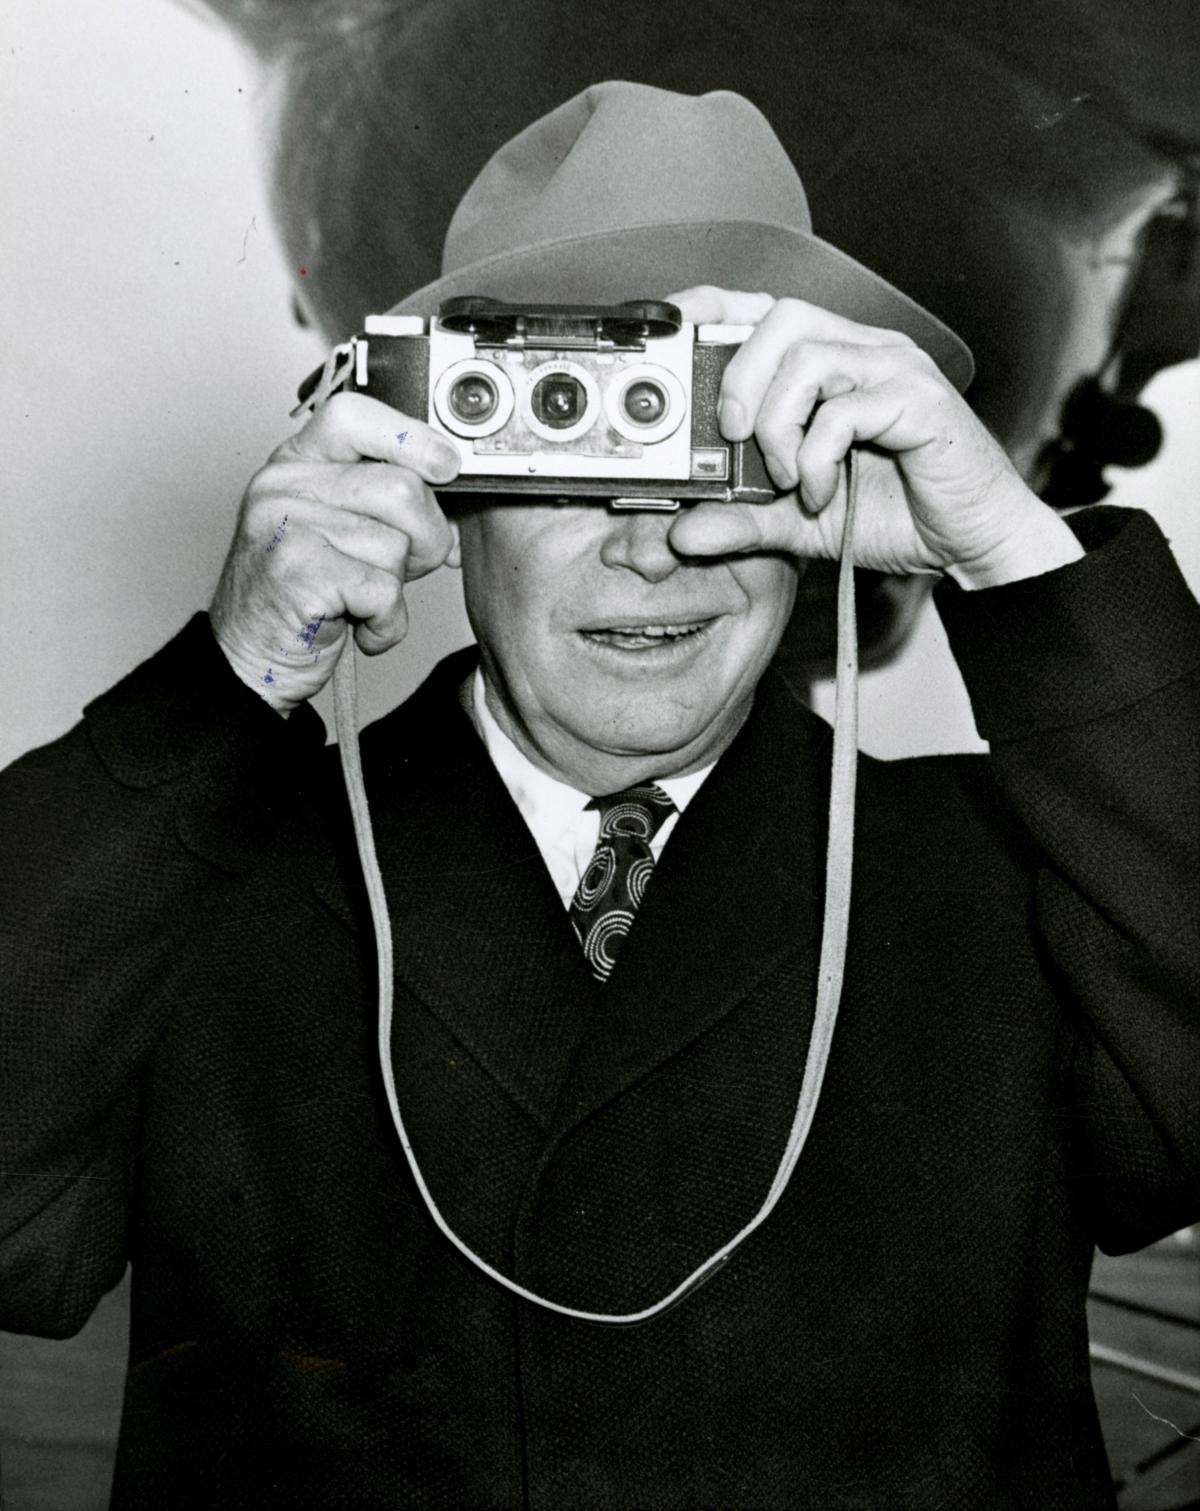 President Eisenhower photographs his photographers, Washington, D.C., December 25, 1953. [72-622-2]